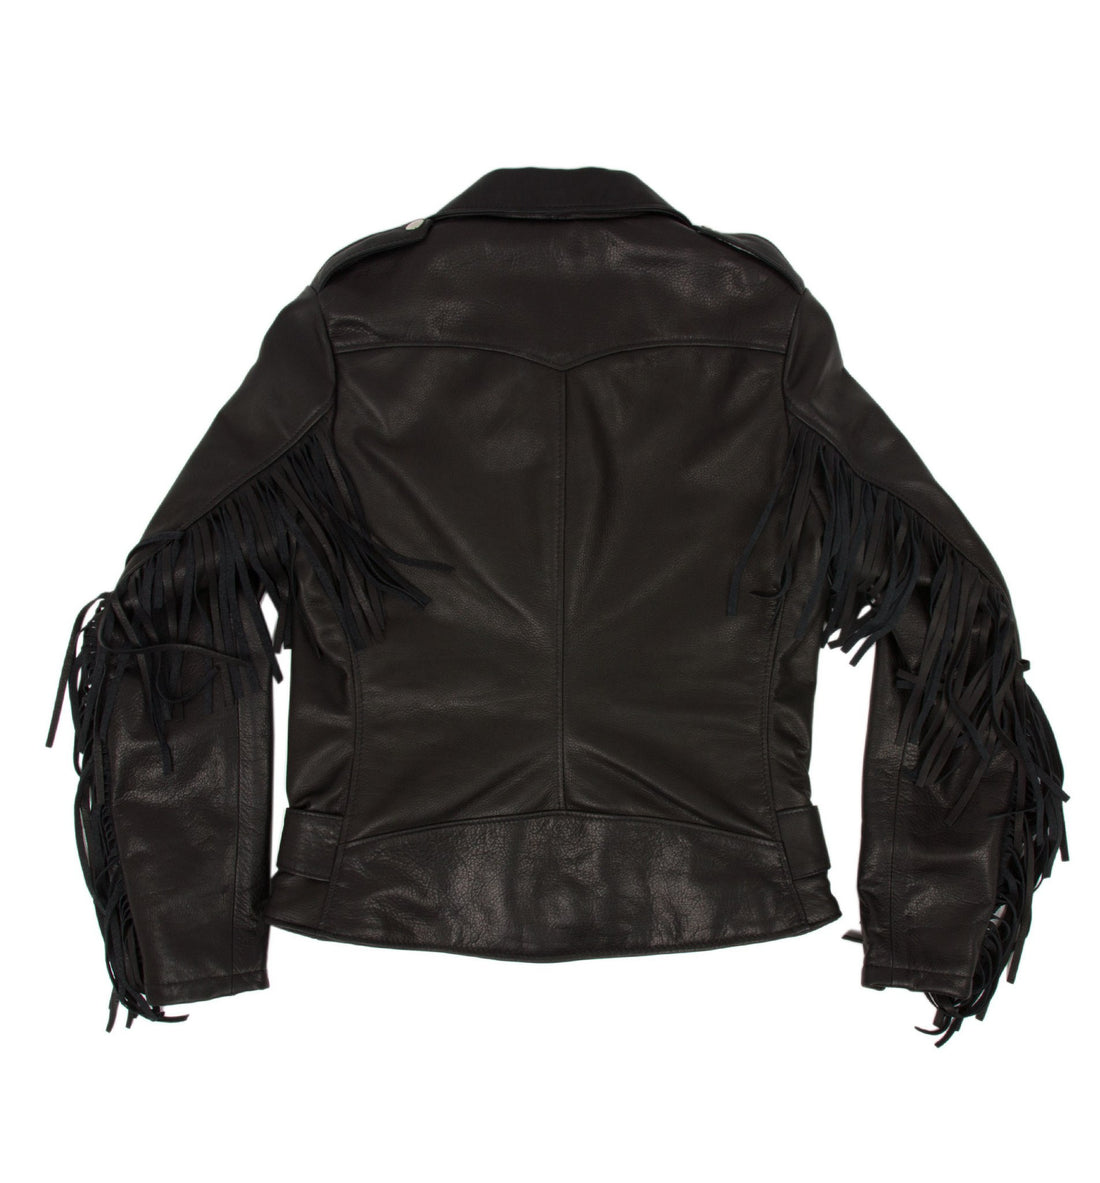 Schott Women's Fringe Leather Jacket - Apparel: Women's: Outerwear - Iron and Resin